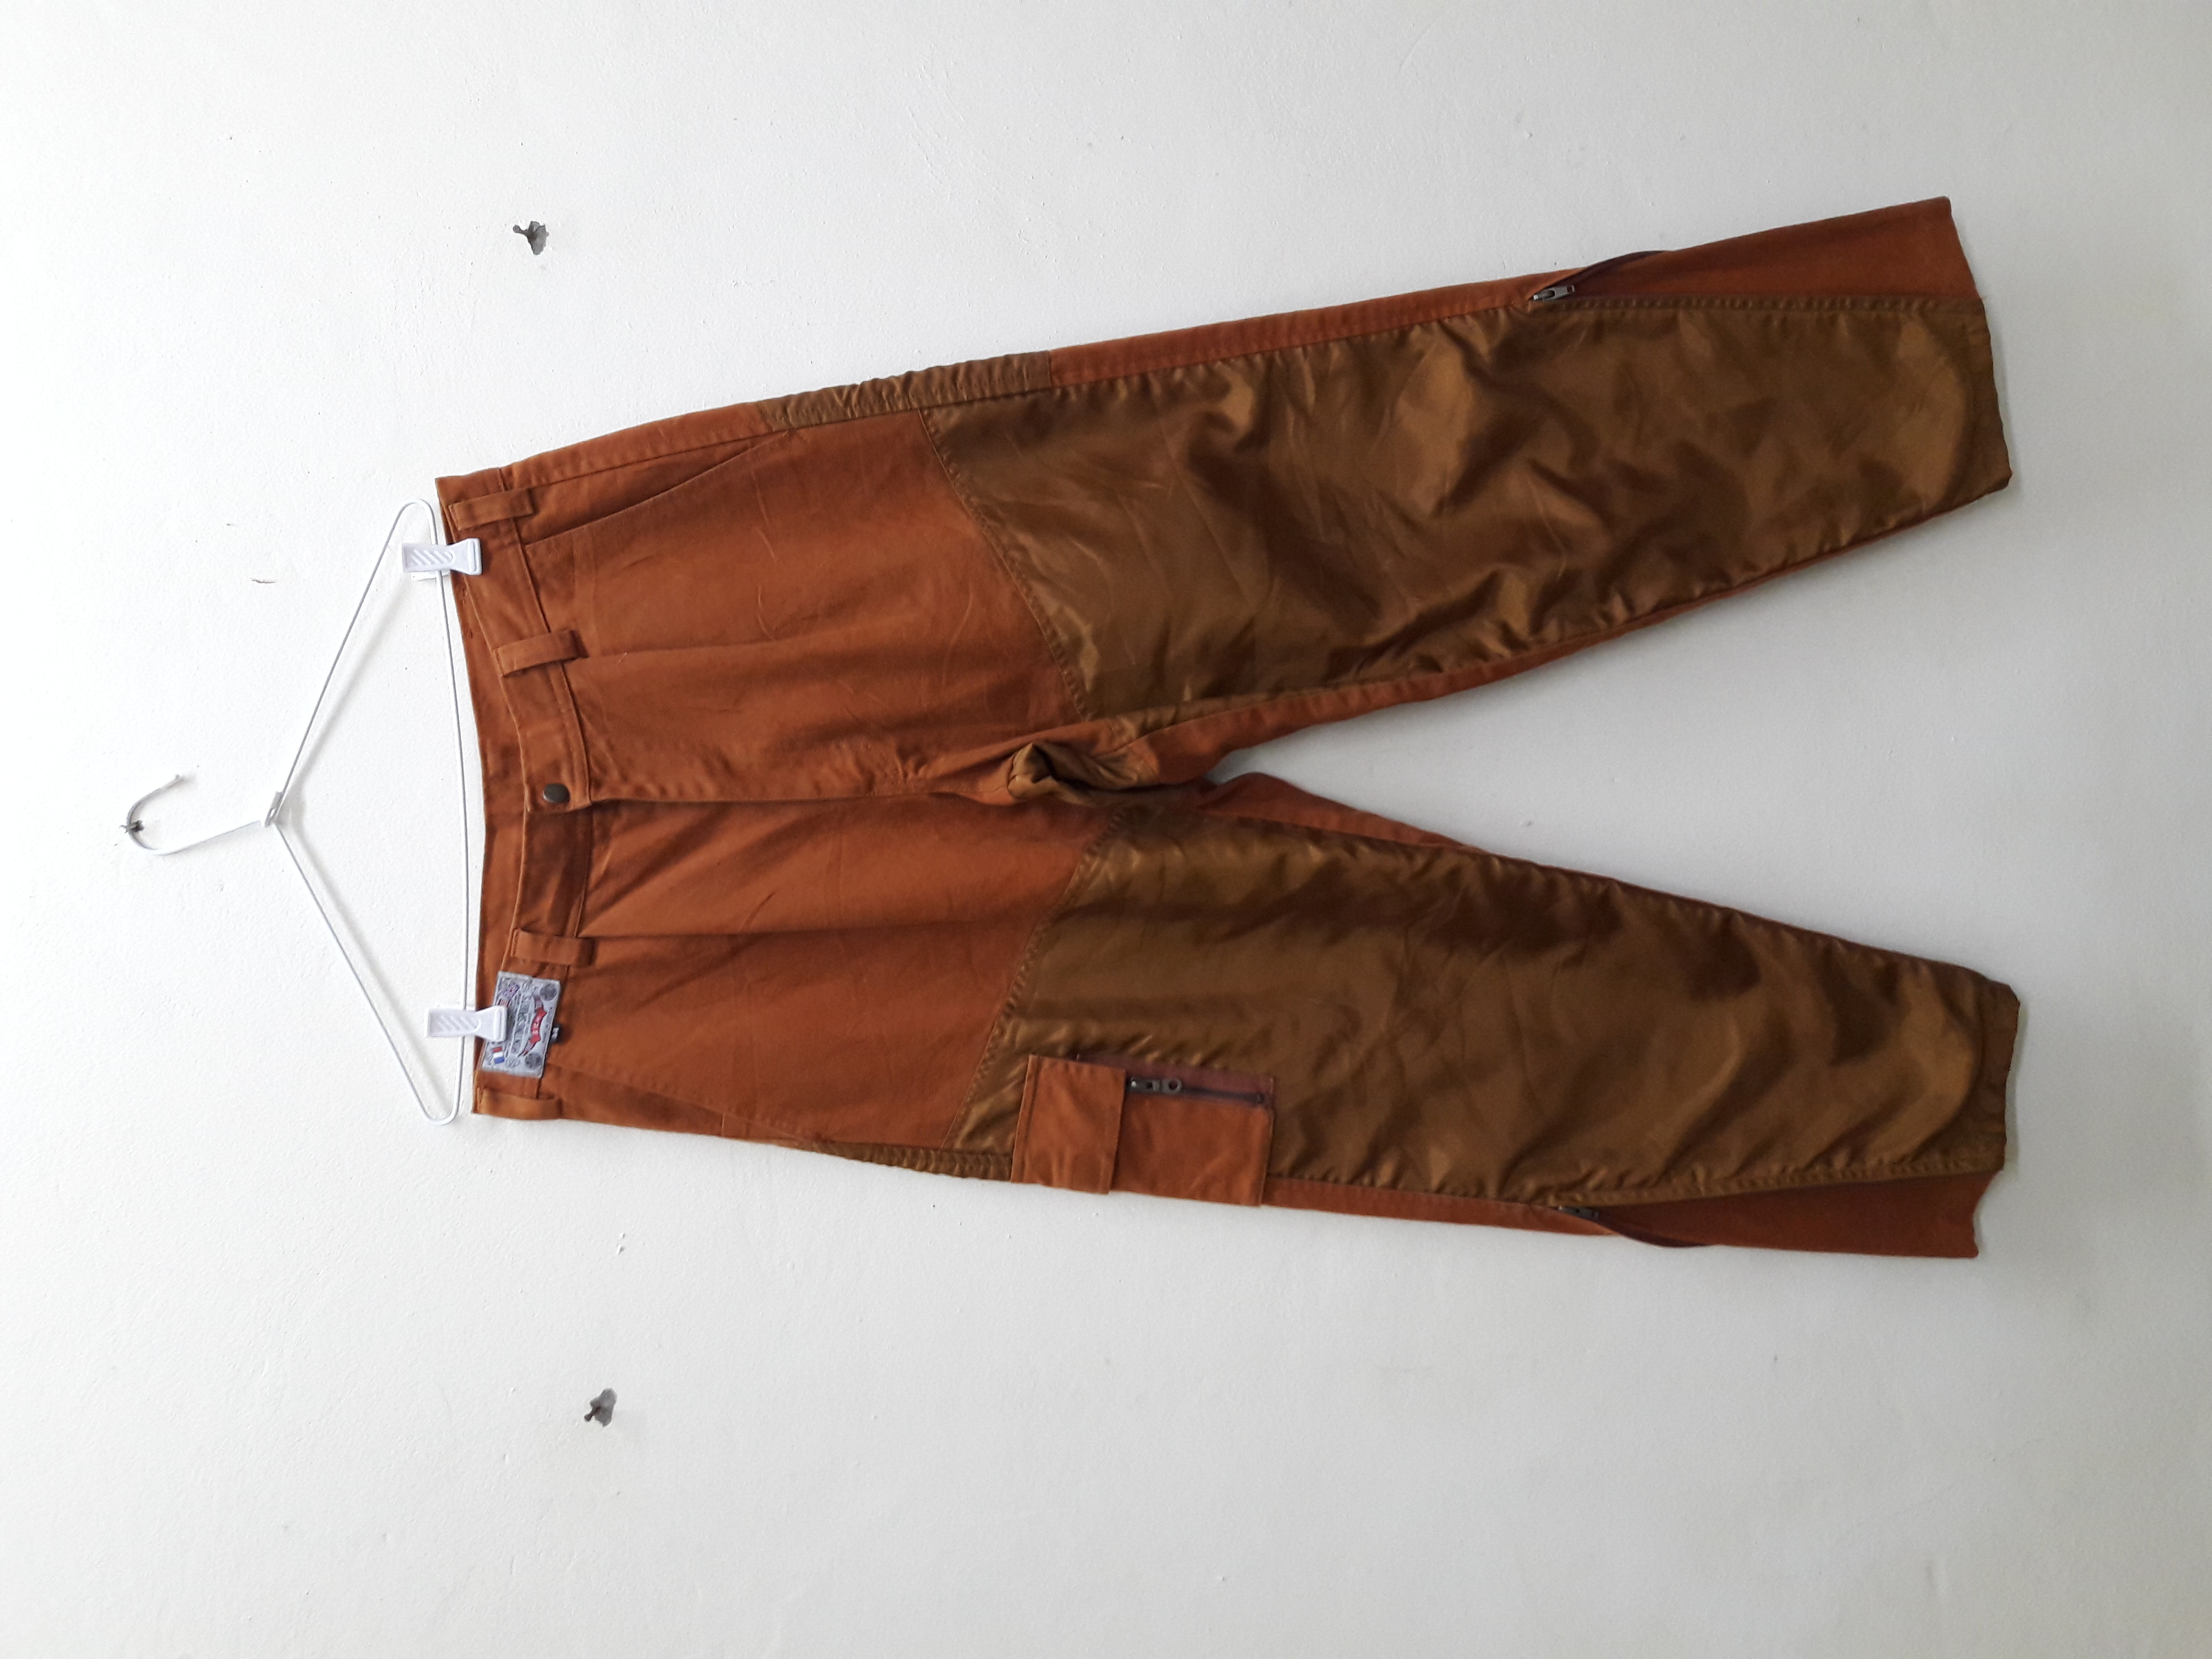 eac4dd4aadd84 Japanese Brand Vintage Rare Hunting Sports Pants Trausers Baggy Japan Brand  Size 33 Men Clothing Cargo Tactical Zipper Leg Open Casual Wear   Grailed